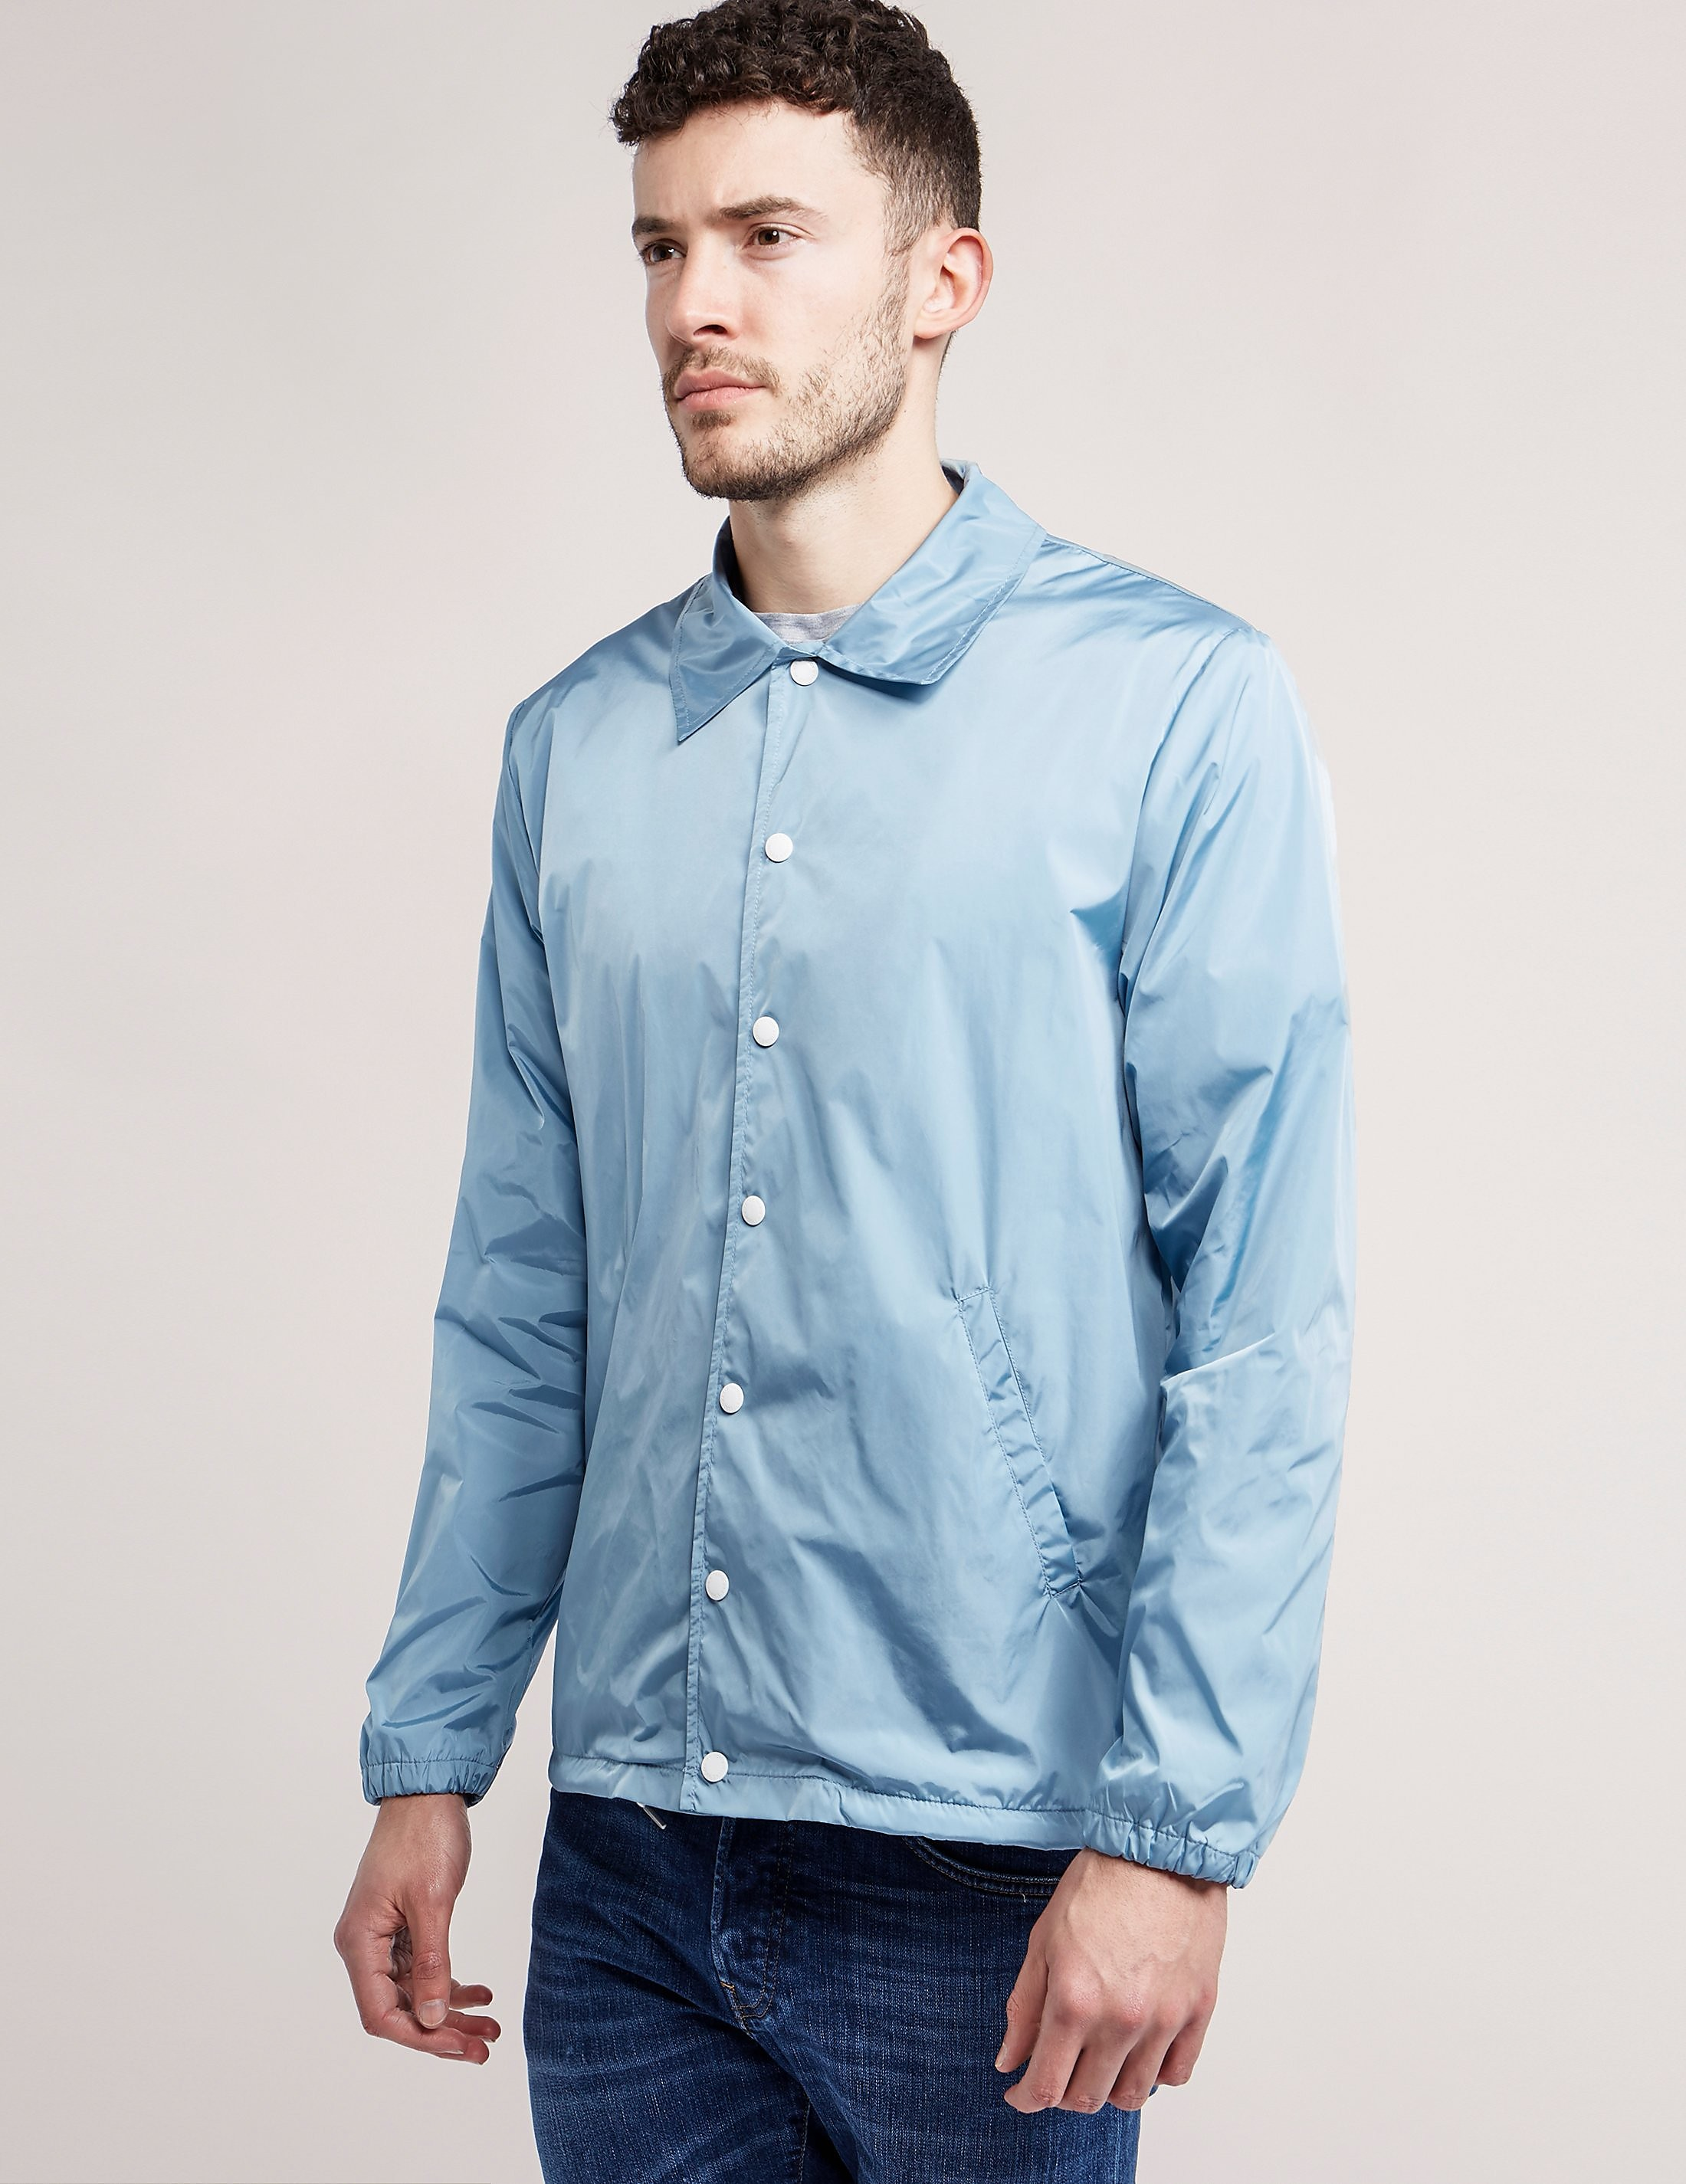 Maison Kitsune Light Windbreaker Jacket